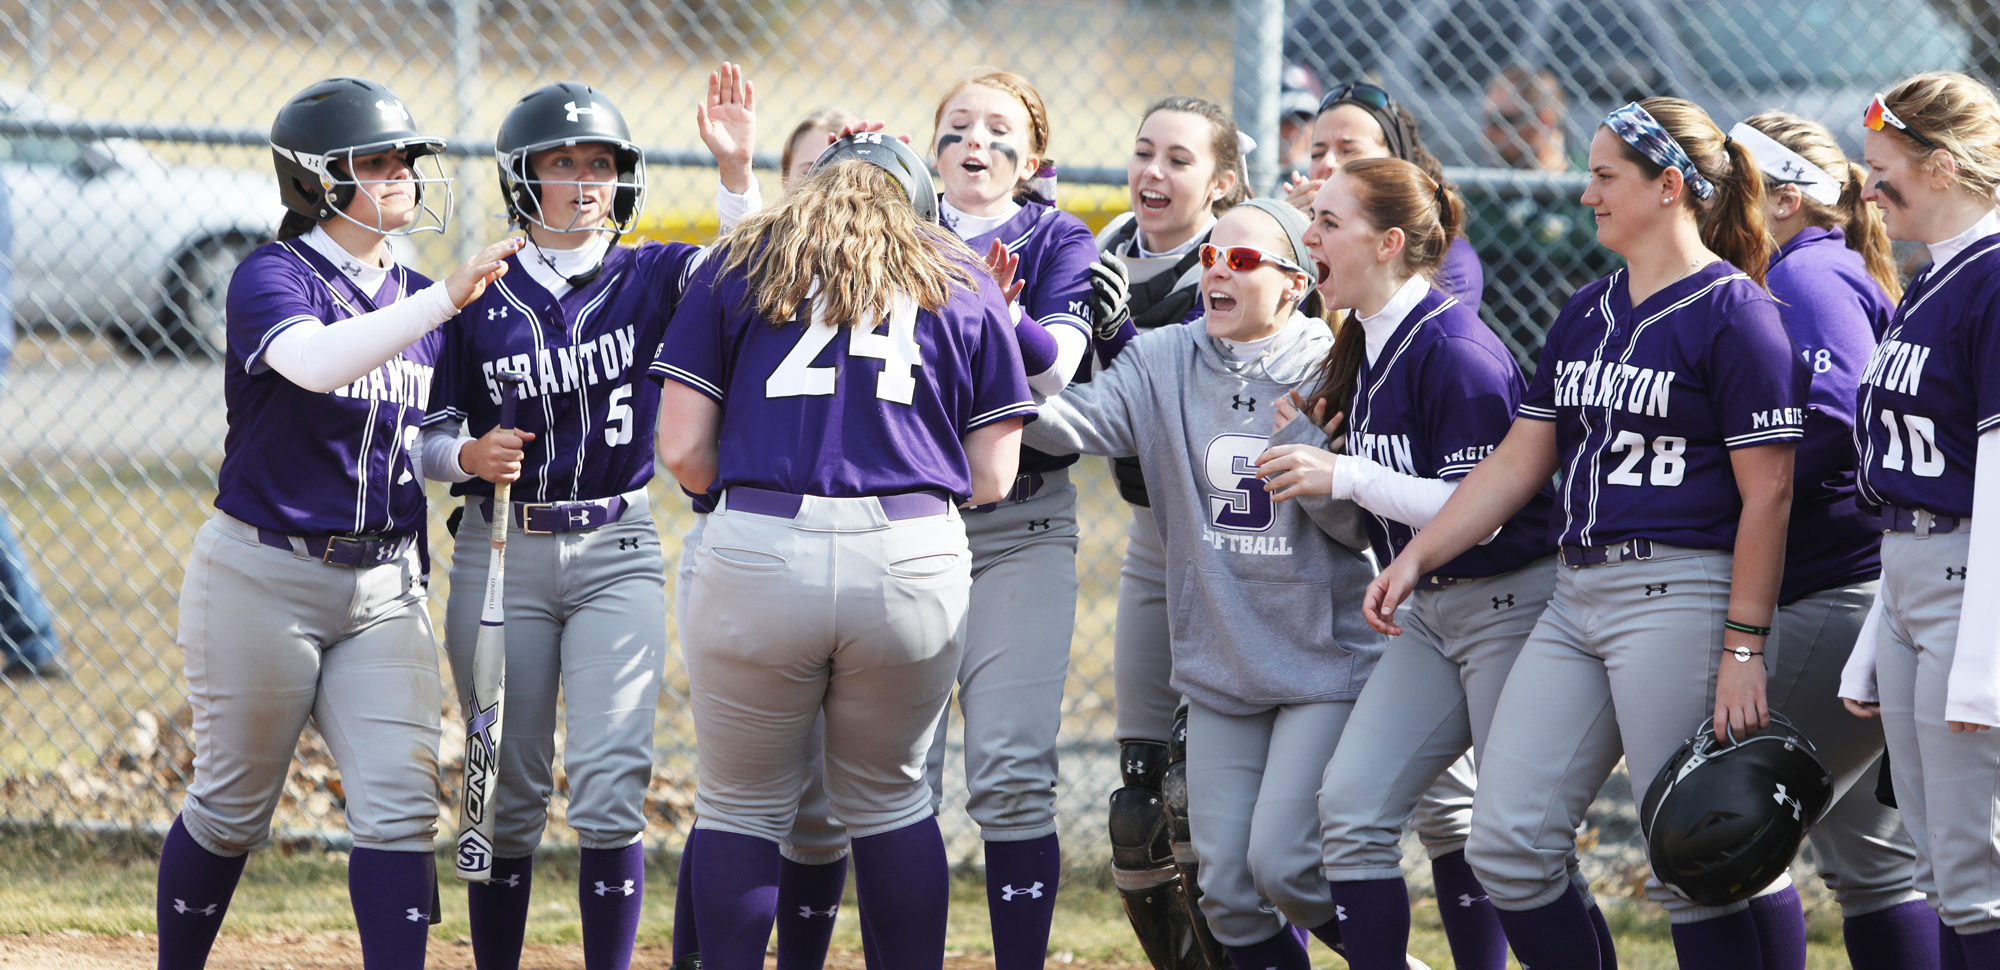 Softball Program to Host Brain Injury Awareness Game Saturday vs. Catholic